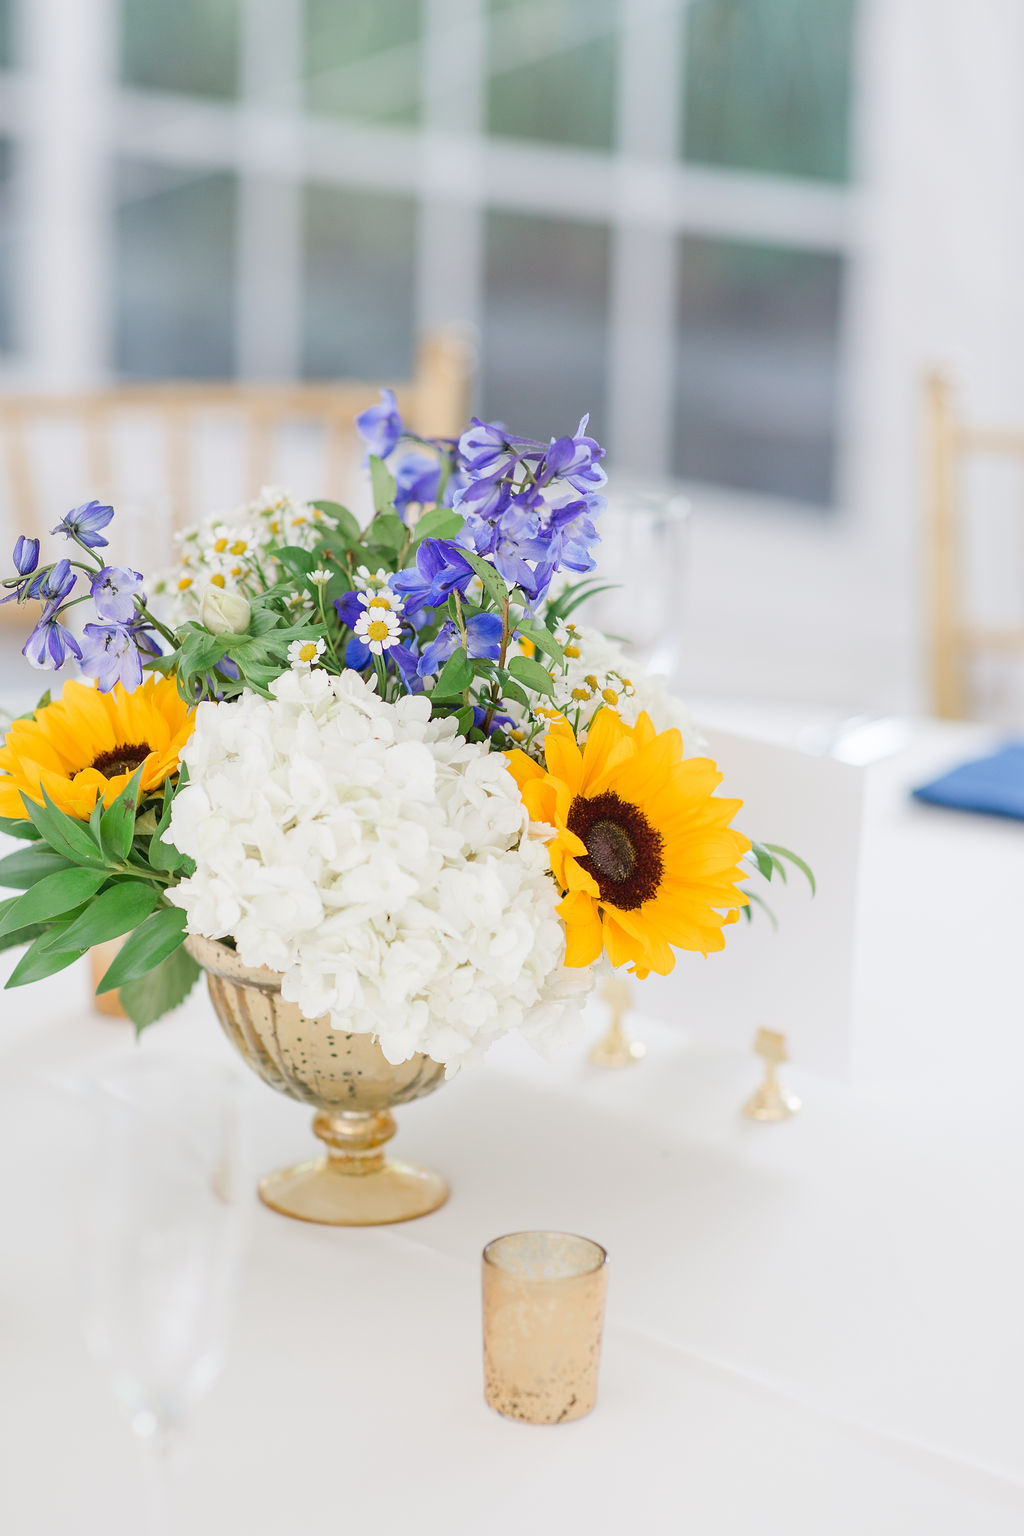 Centerpieces in an elegant gold compote with Sunflower and Delphinium for the blue in this couple's palette. Photography by Emily Alyssa Photography.